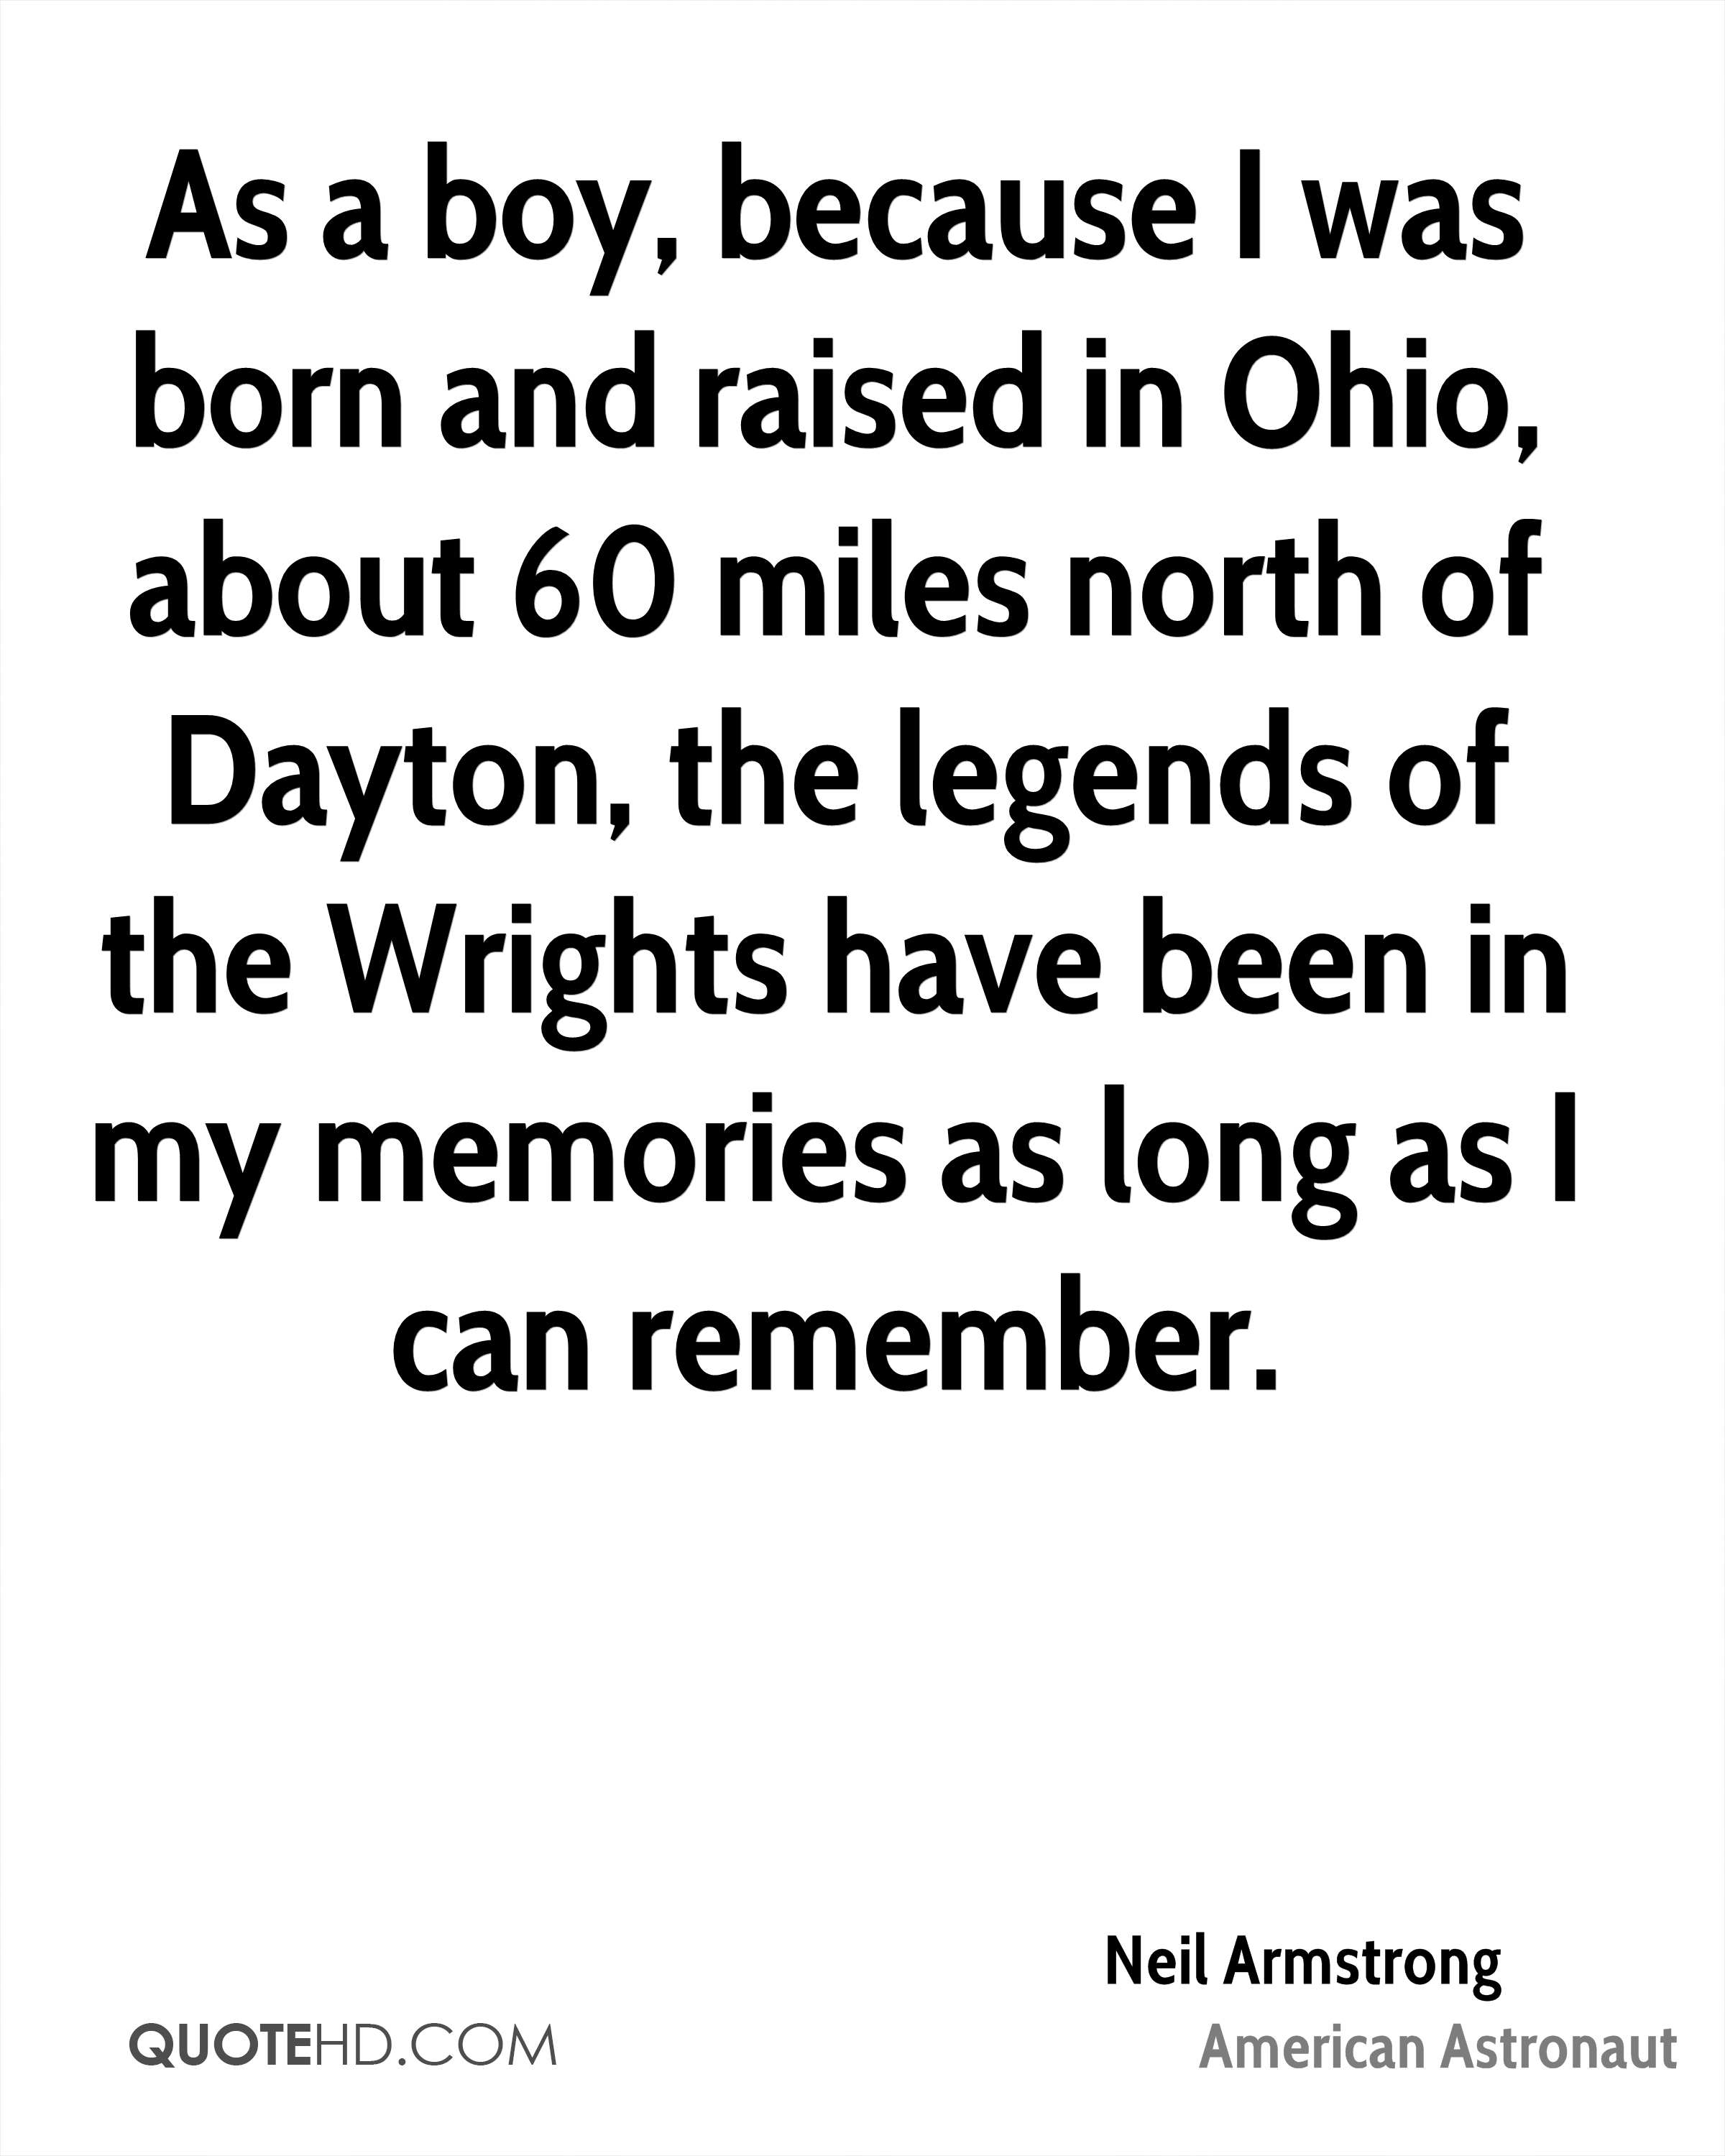 As a boy, because I was born and raised in Ohio, about 60 miles north of Dayton, the legends of the Wrights have been in my memories as long as I can remember.